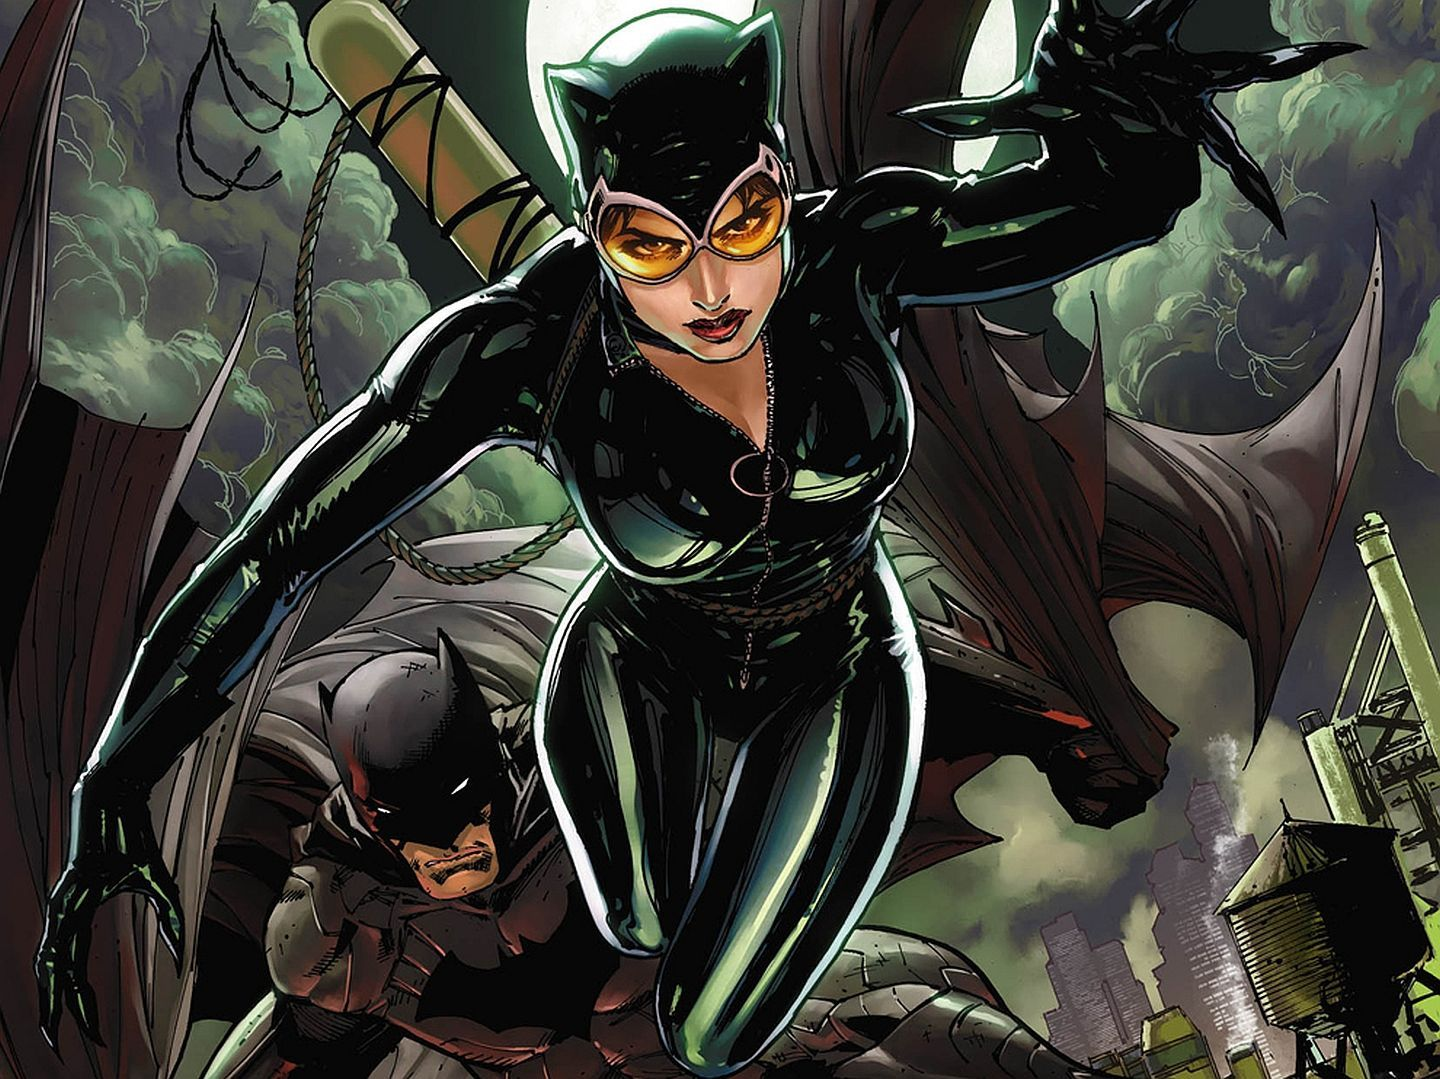 Catwoman Comic Wallpapers - Top Free Catwoman Comic Backgrounds - WallpaperAccess